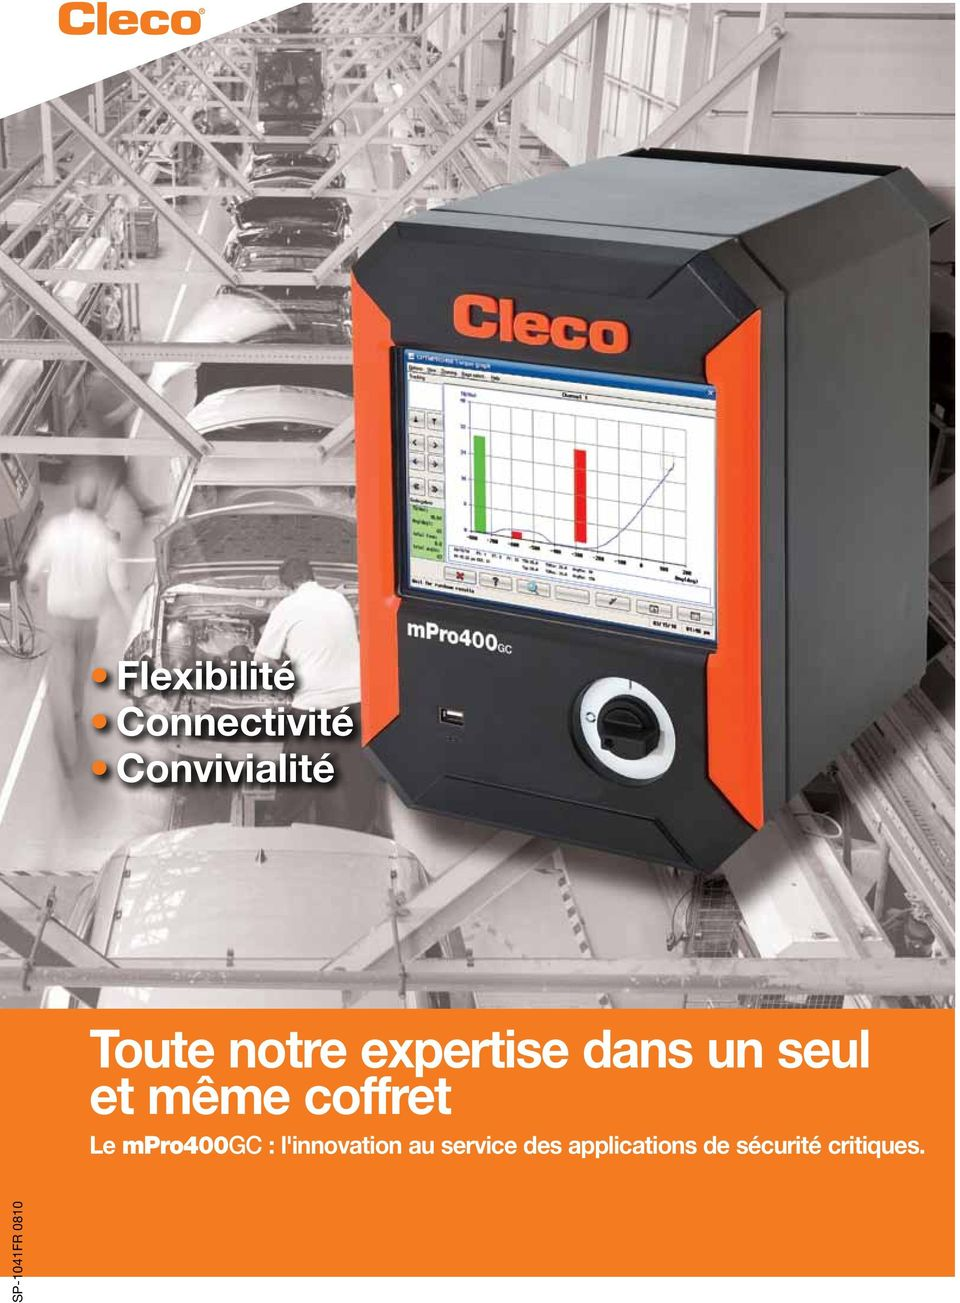 Le mpro400gc : l'innovation au service des